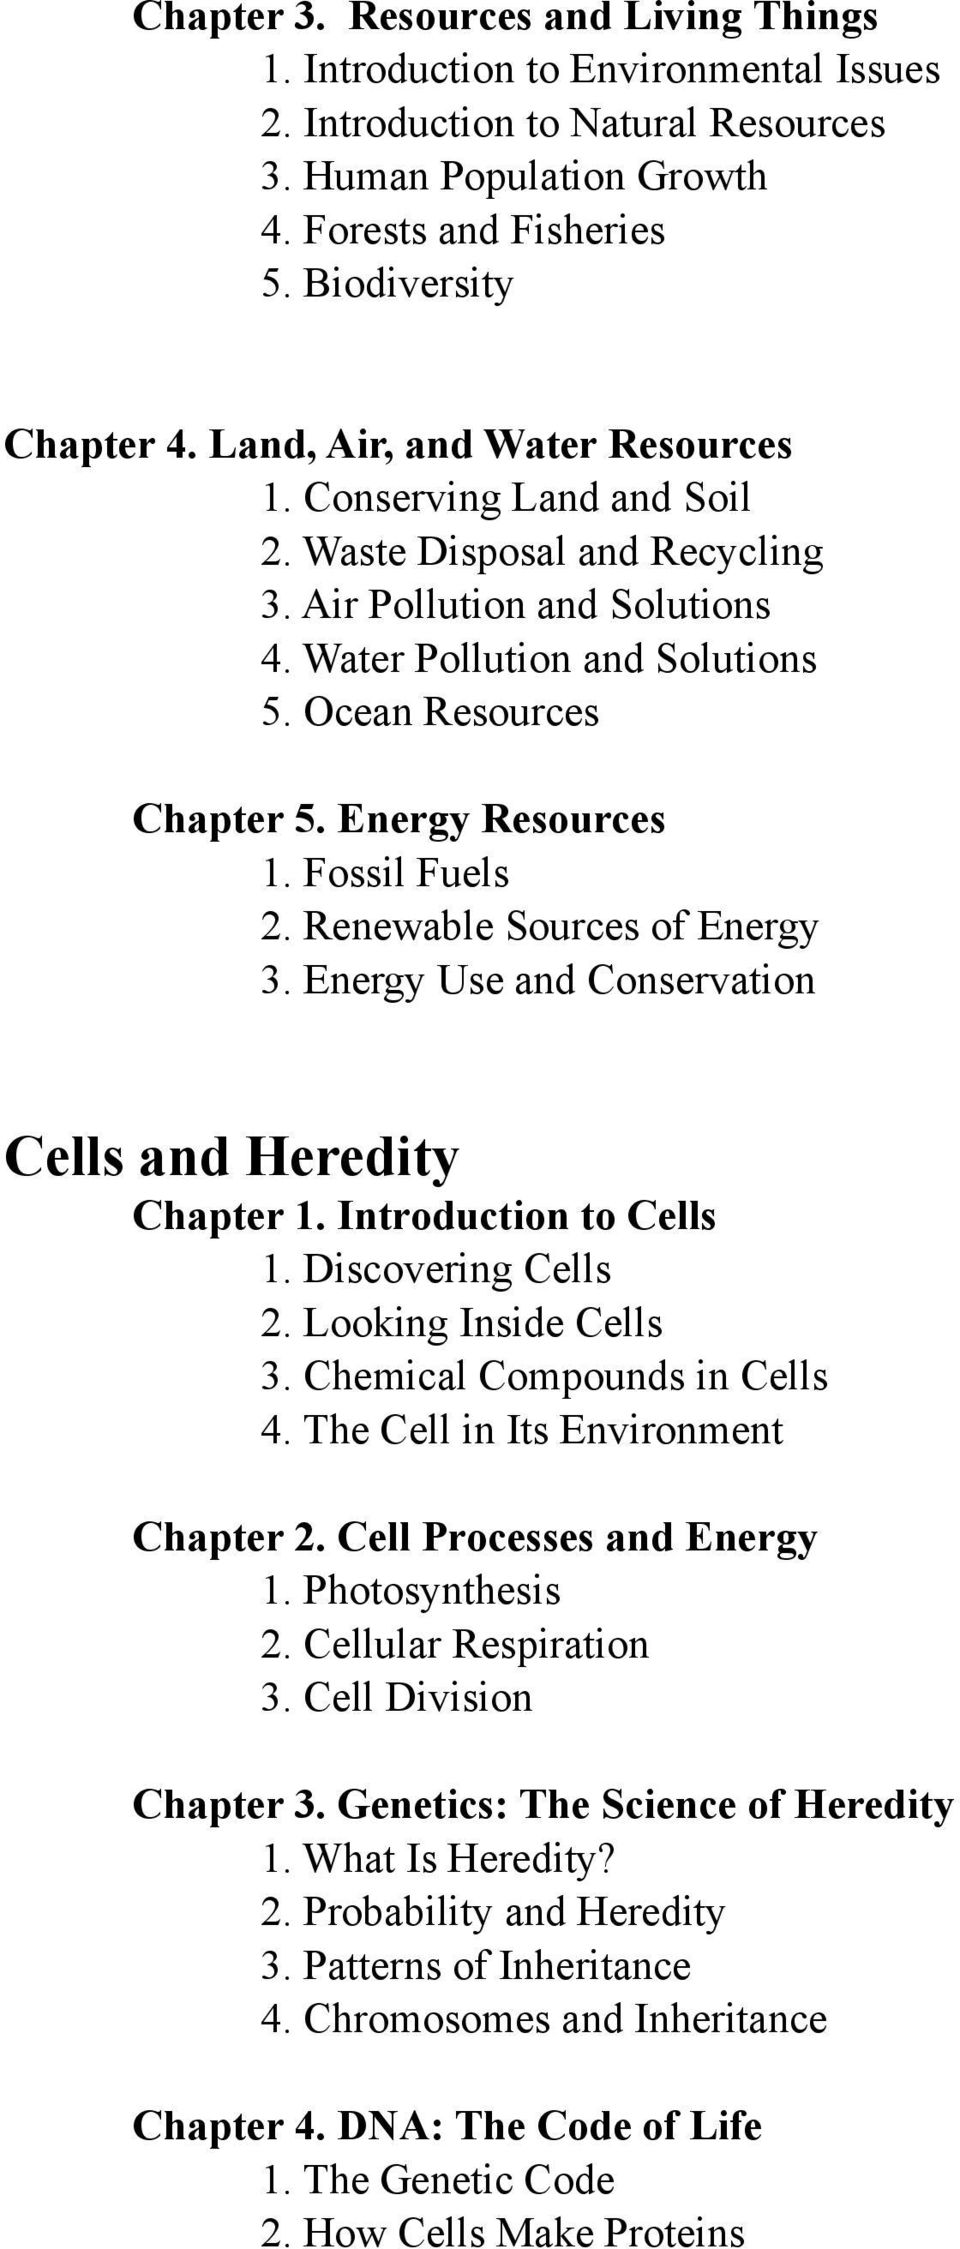 Energy Resources 1. Fossil Fuels 2. Renewable Sources of Energy 3. Energy Use and Conservation Cells and Heredity Chapter 1. Introduction to Cells 1. Discovering Cells 2. Looking Inside Cells 3.